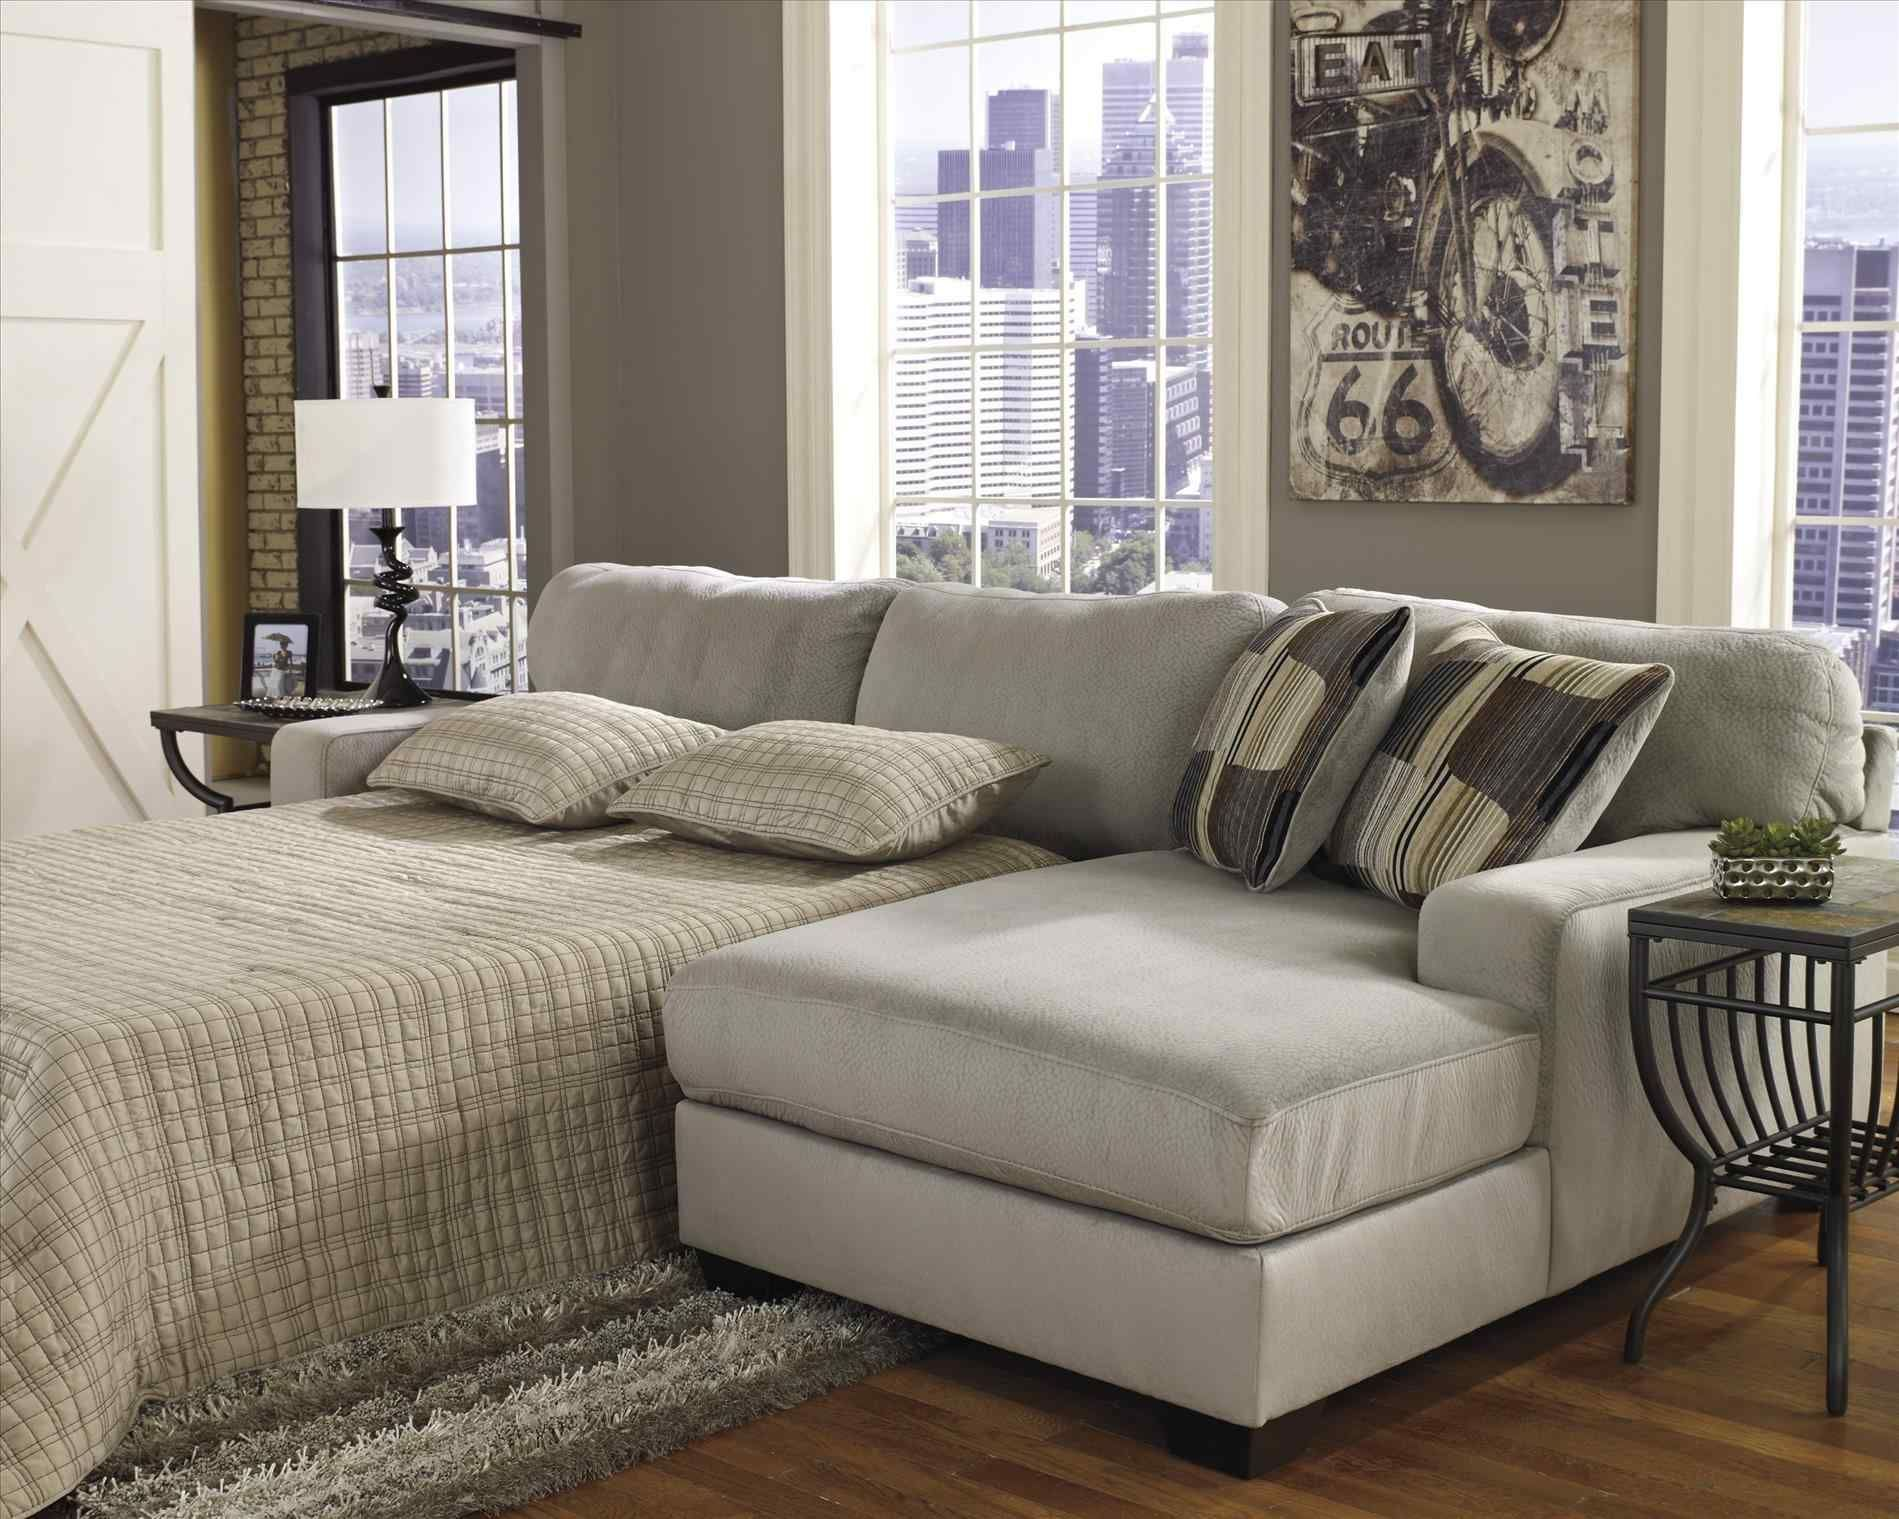 Blog Affordable Where To Buy Cheap Sectional Sofas My Blog For Sale Roselawnlutheran For Where To Buy Cheap Secti Sectional Sofa With Chaise Best Sleeper Sofa Sectional Sleeper Sofa